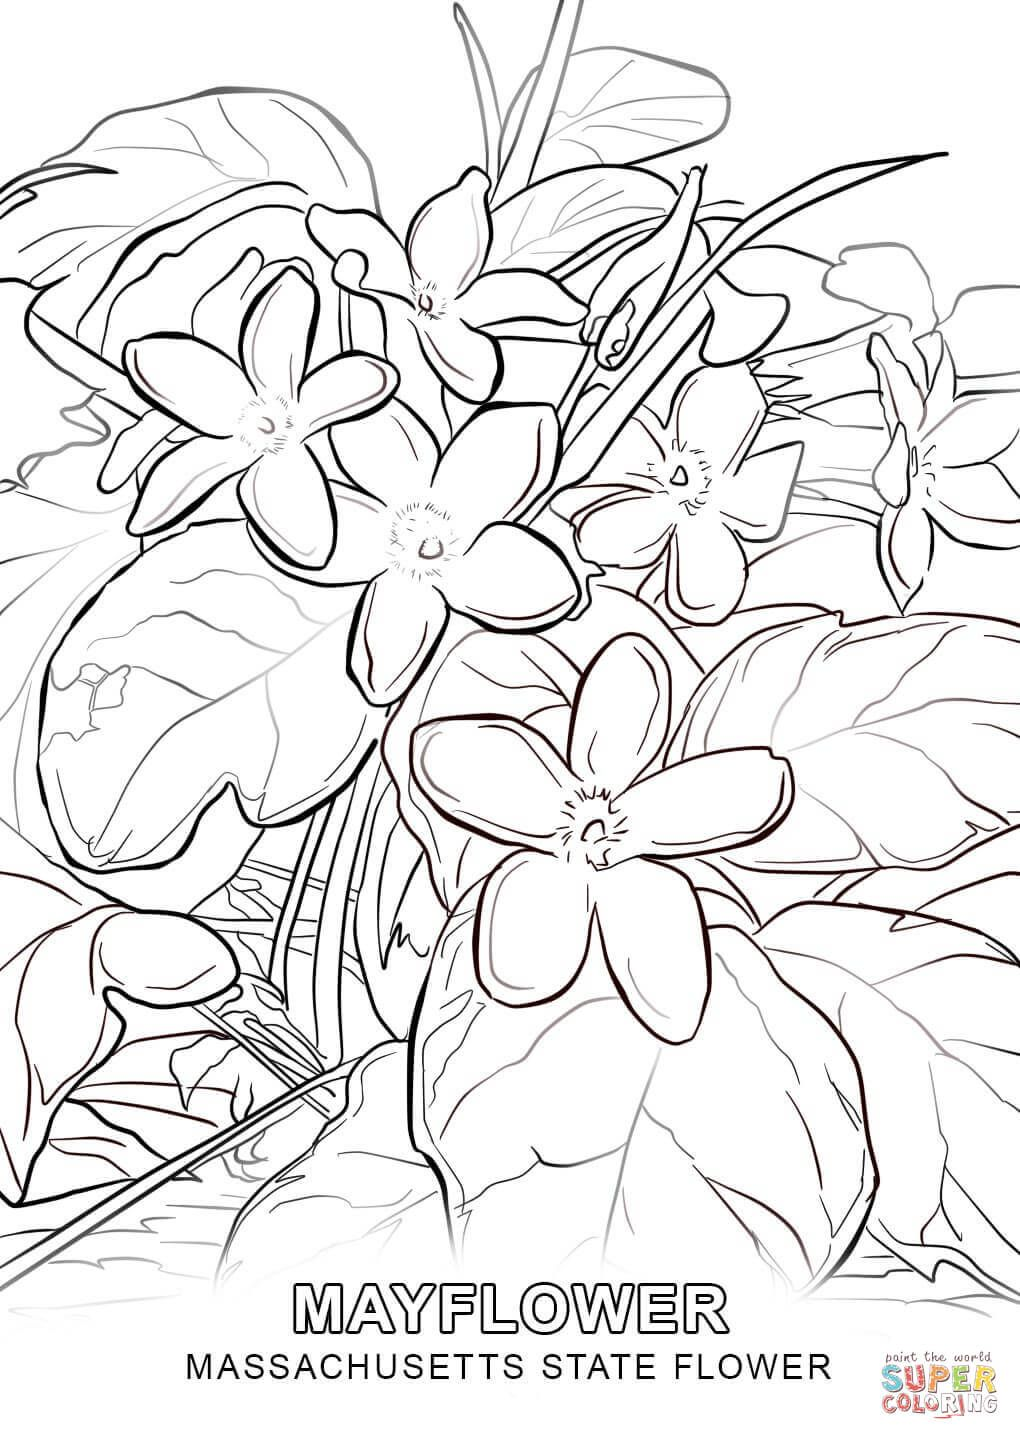 Massachusetts State Flower Coloring Page